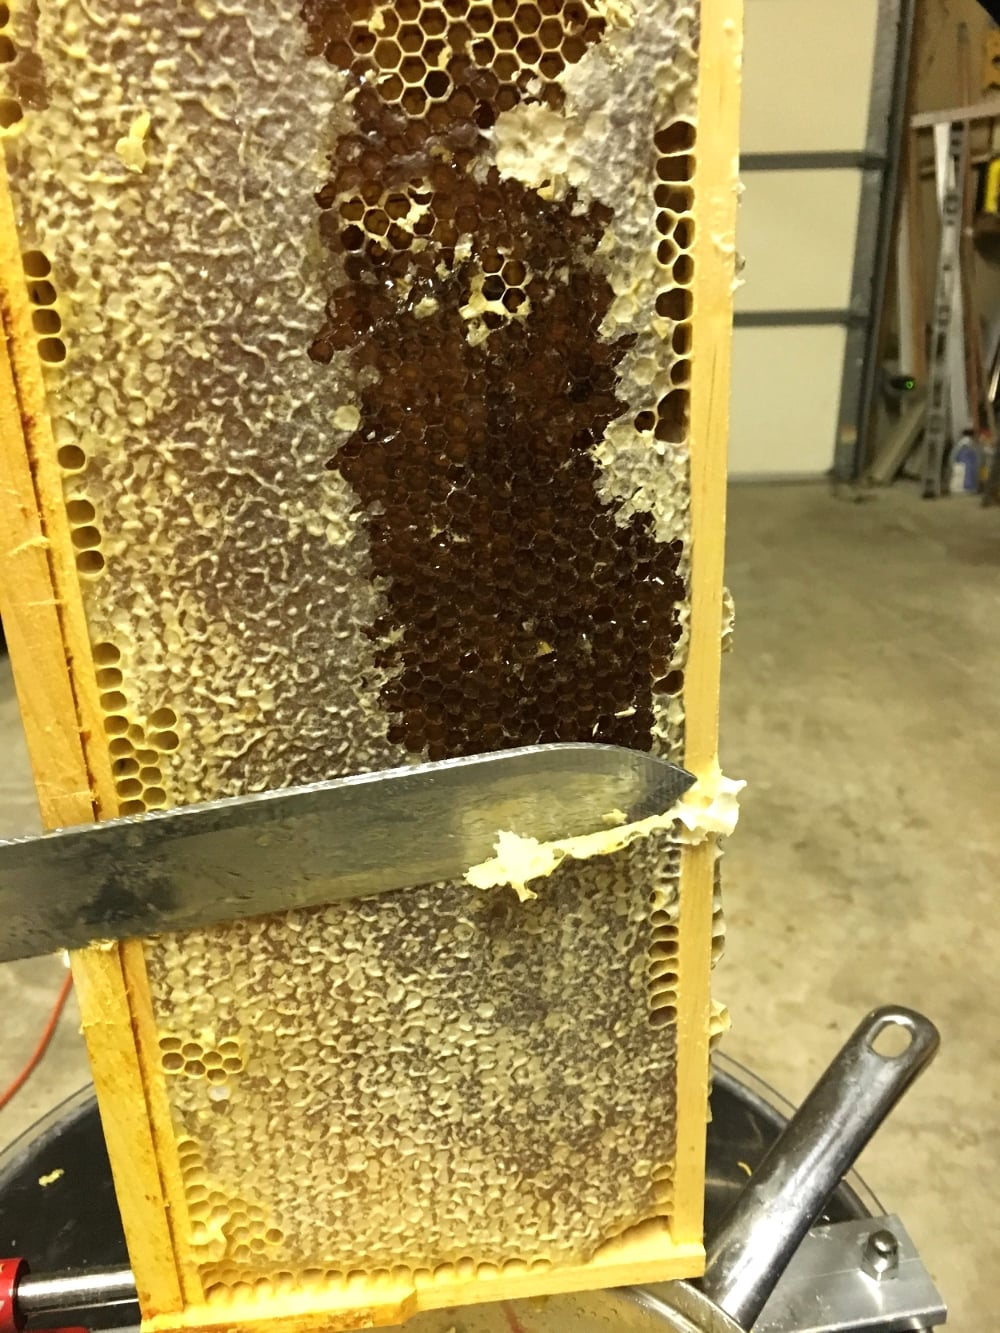 Here is one of the frames from our hives. Look at all of that wax and honey!!! It's the little things in life that make me happy, and a giant metal centrifuge full of honey is definitely one of them.